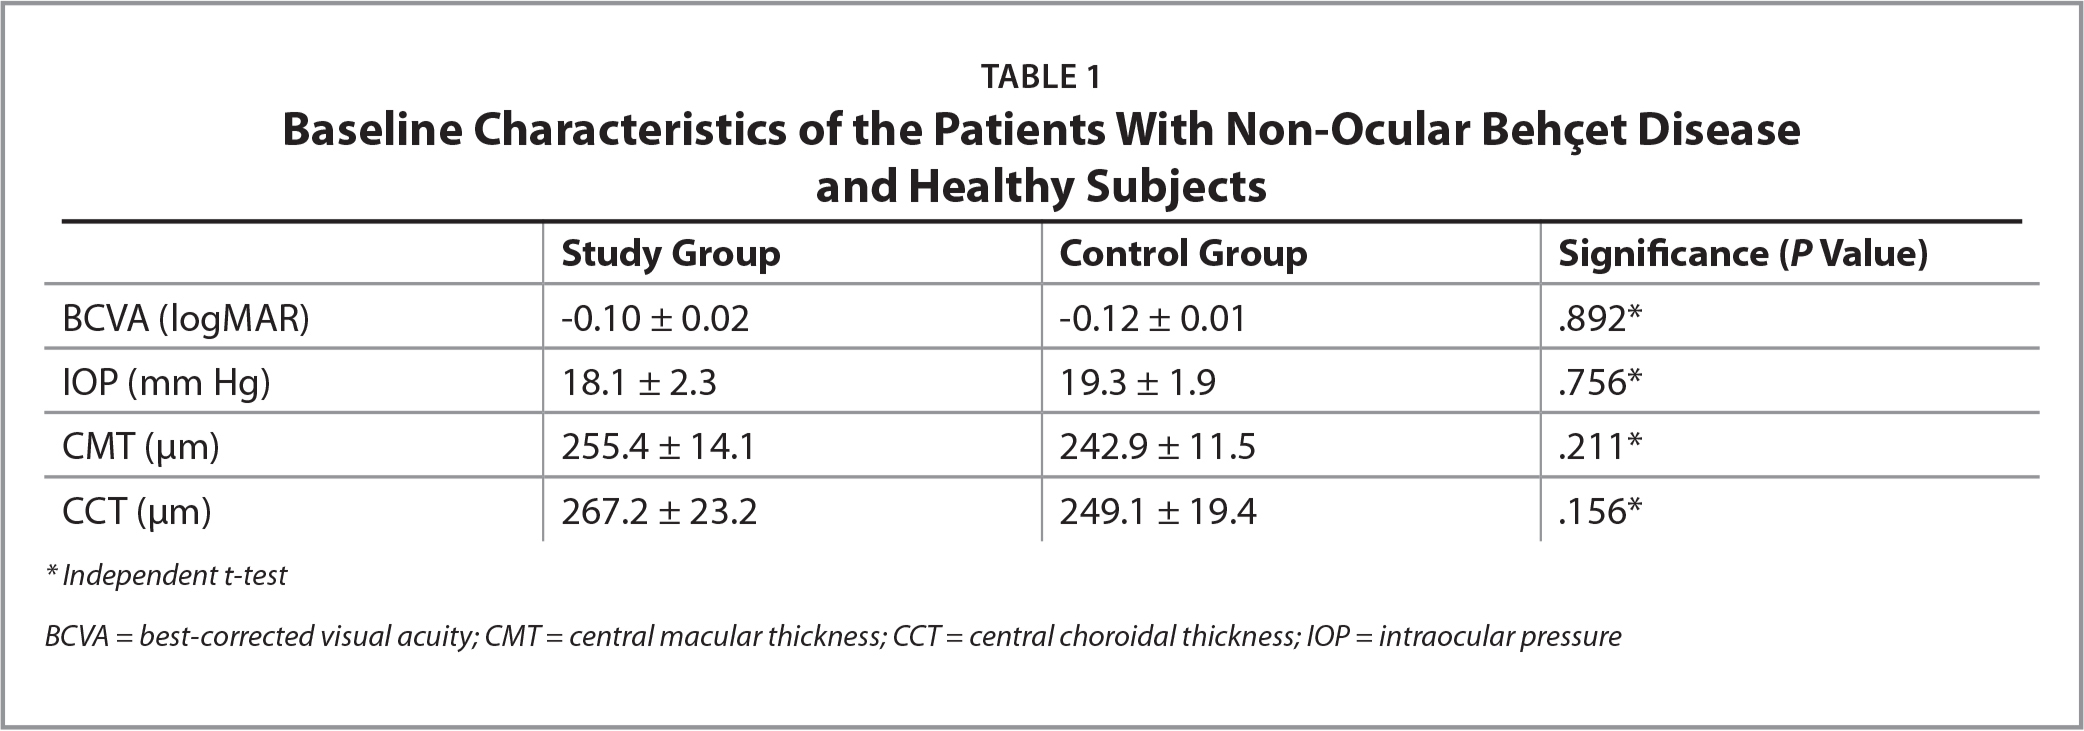 Baseline Characteristics of the Patients With Non-Ocular Behçet Diseaseand Healthy Subjects